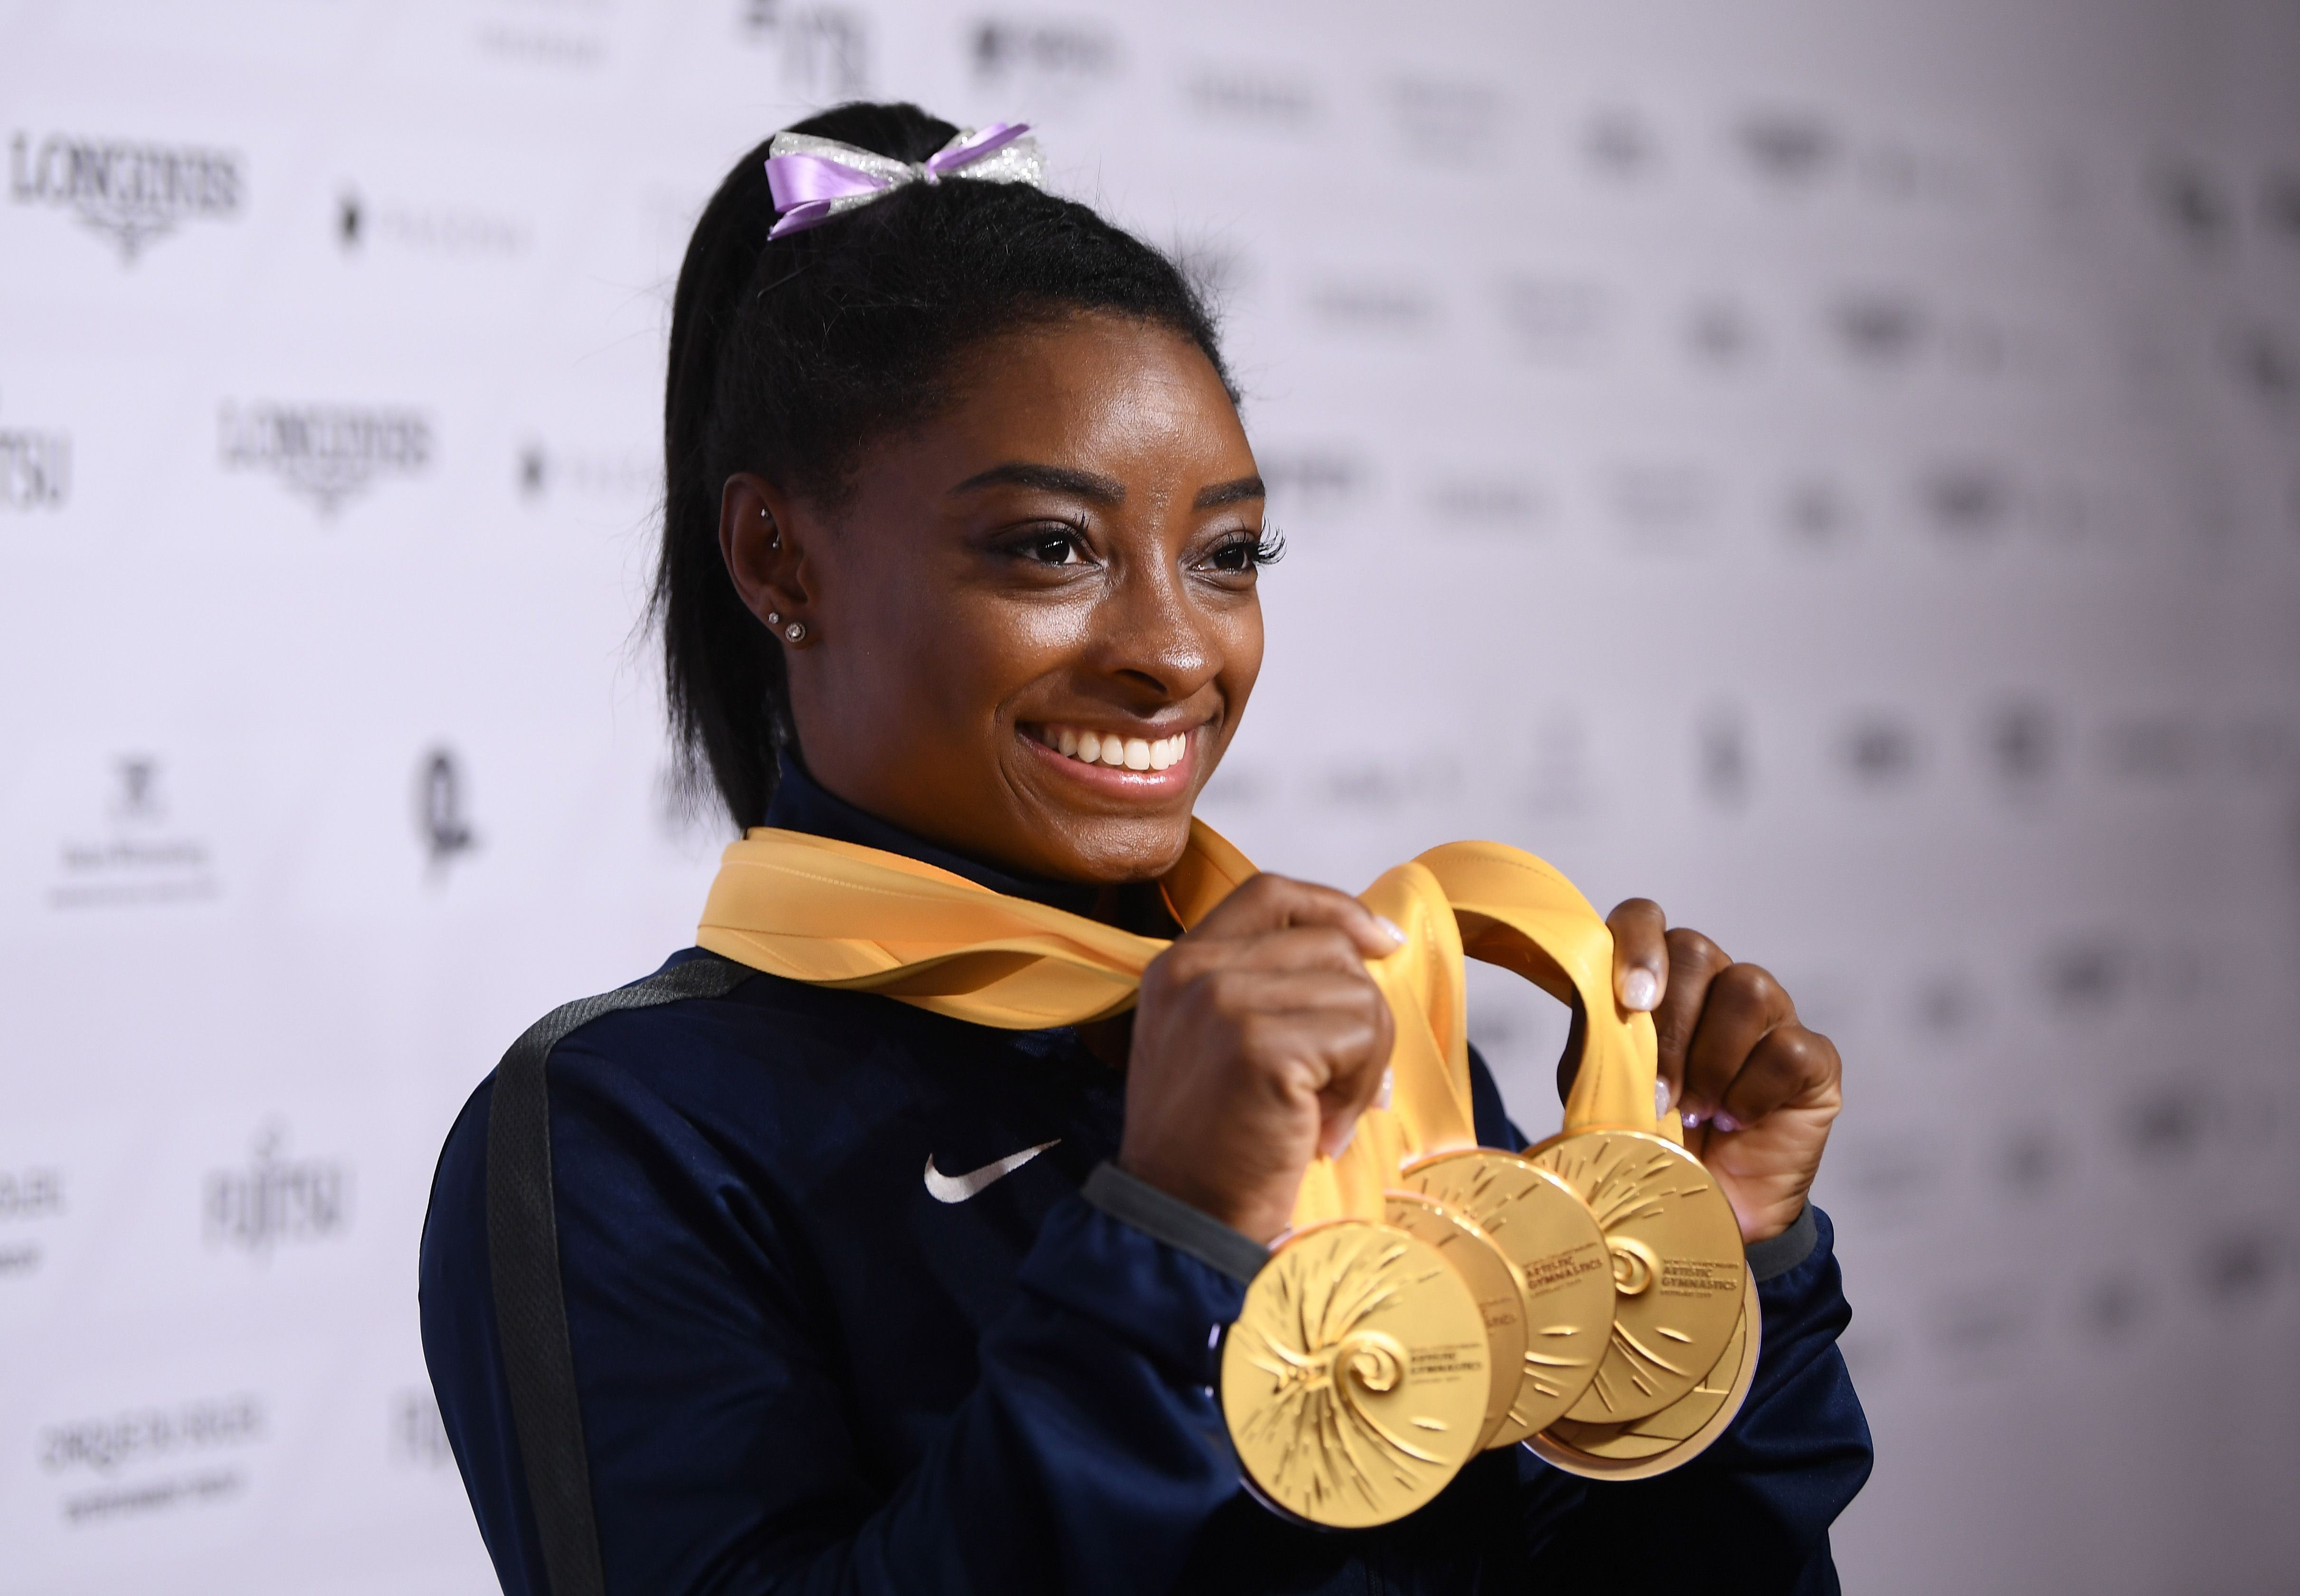 Simone Biles at the FIG Artistic Gymnastics World Championships in Stuttgart, Germany in 2019   Source: Getty Images